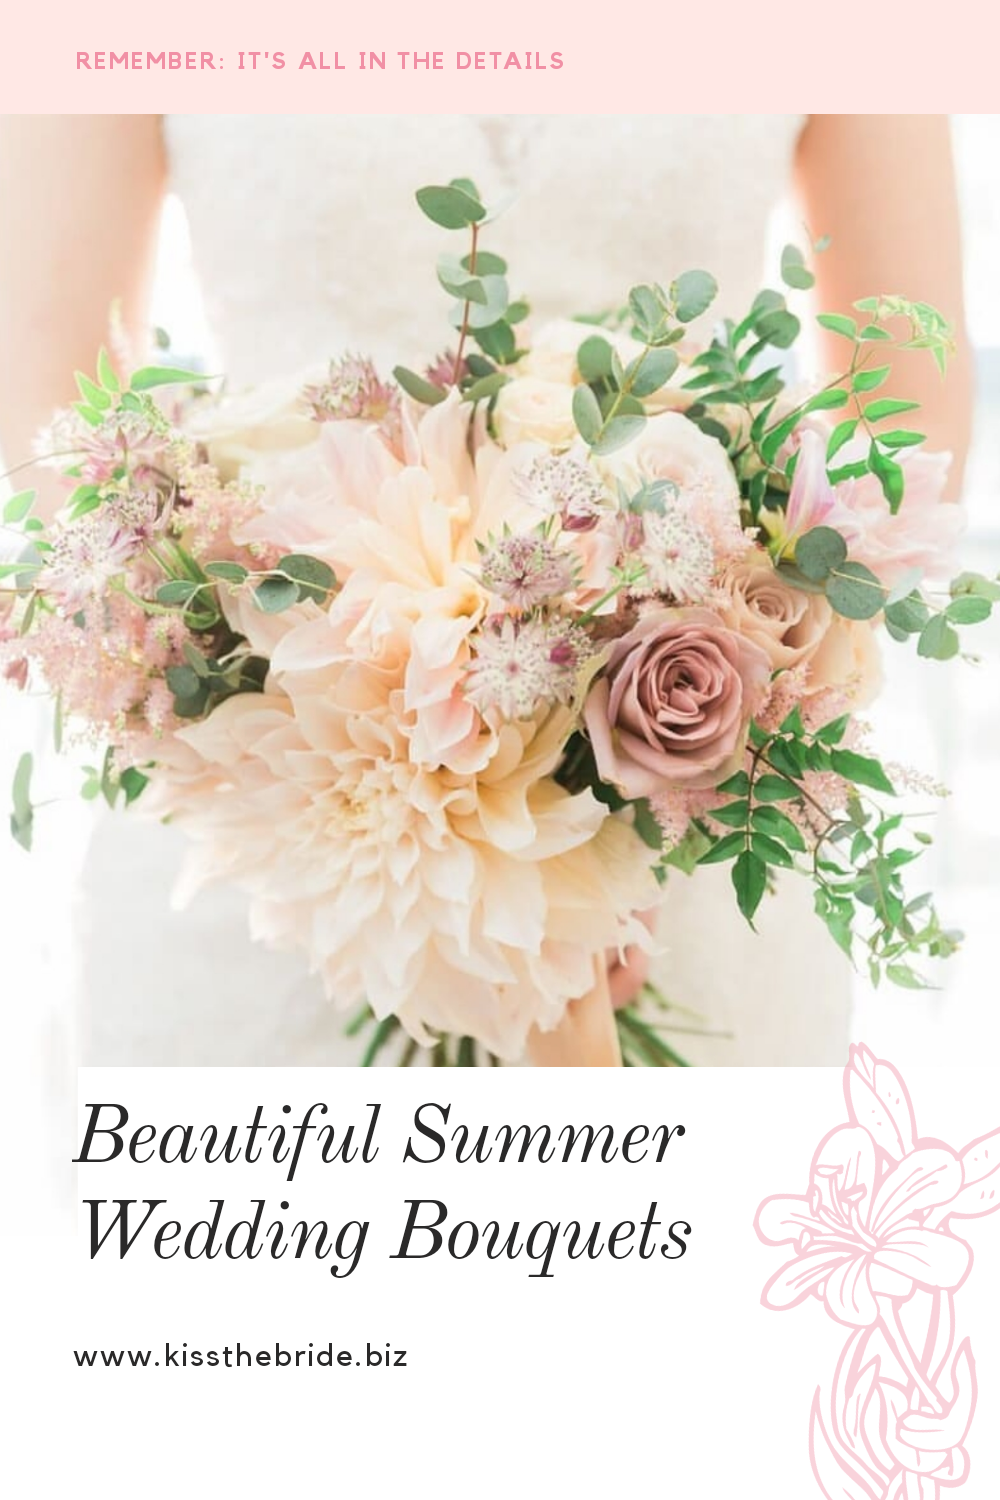 Beautiful Summer Wedding Bouquets